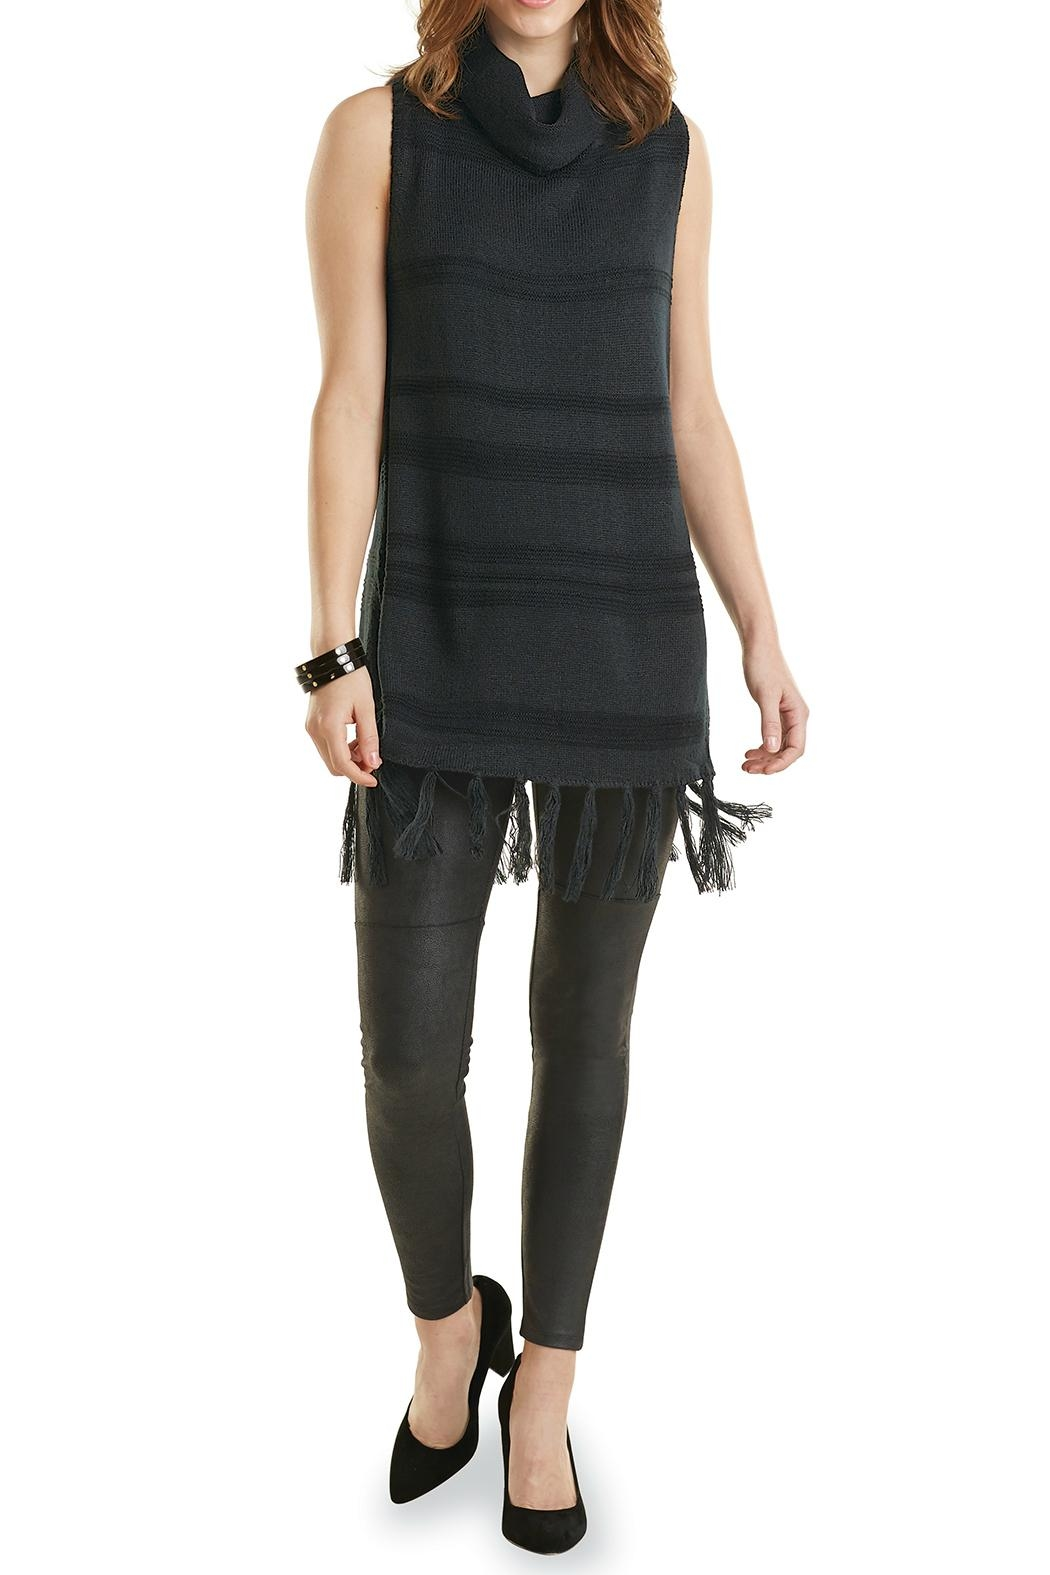 Mud Pie Sleeveless Turtle Neck Sweater - Front Cropped Image